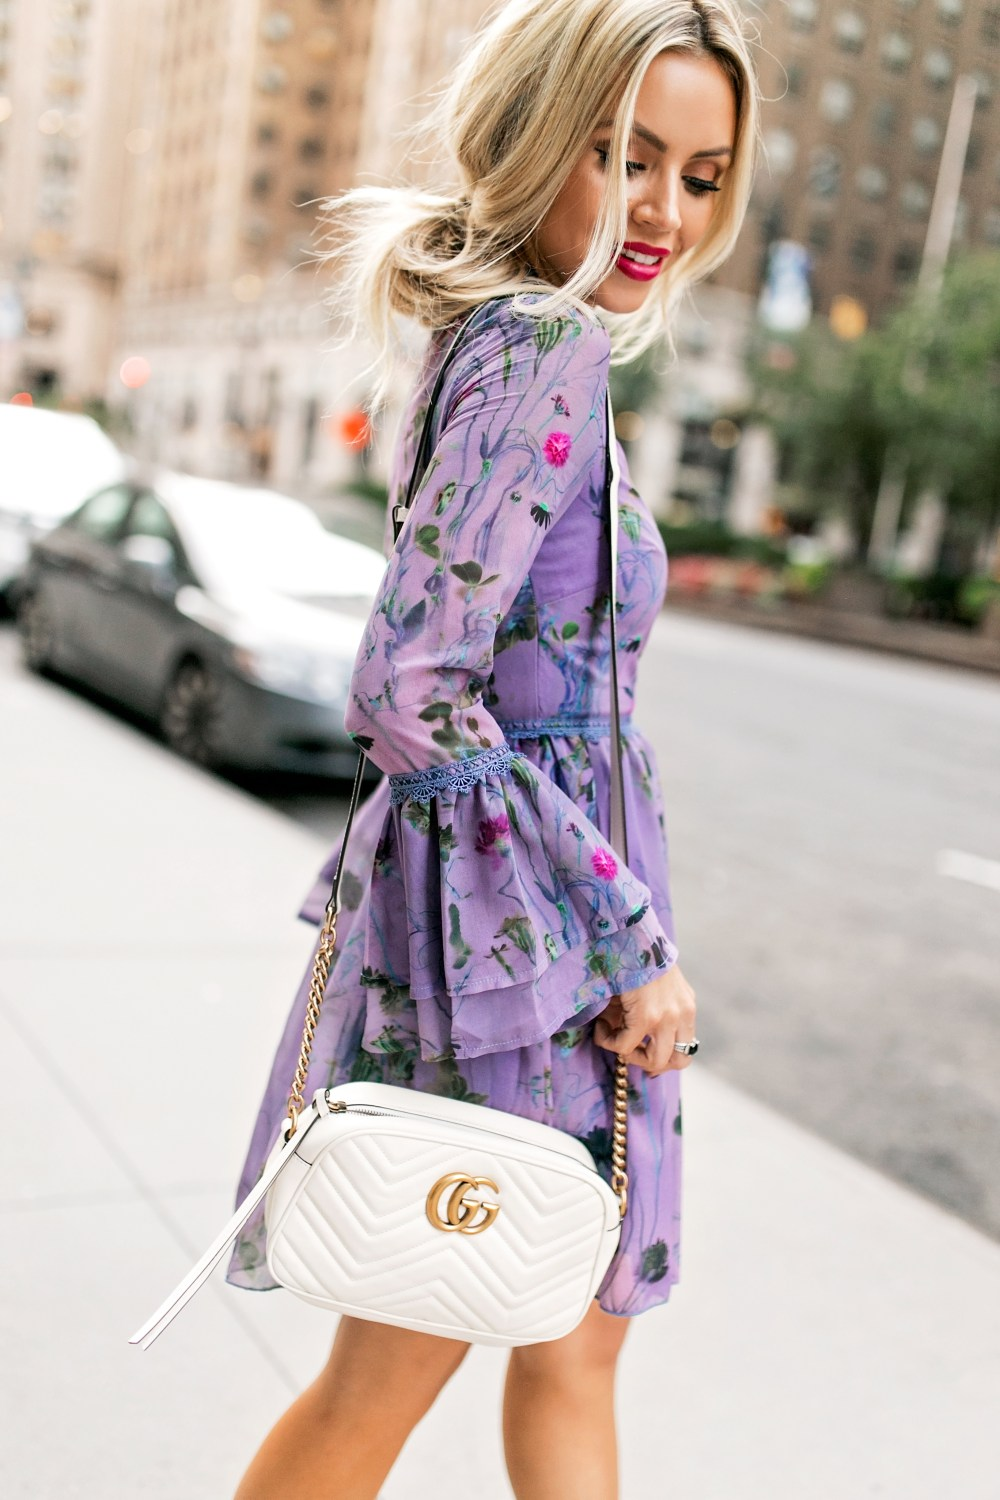 A fall floral dress with bell sleeves | The perfect shade of purple